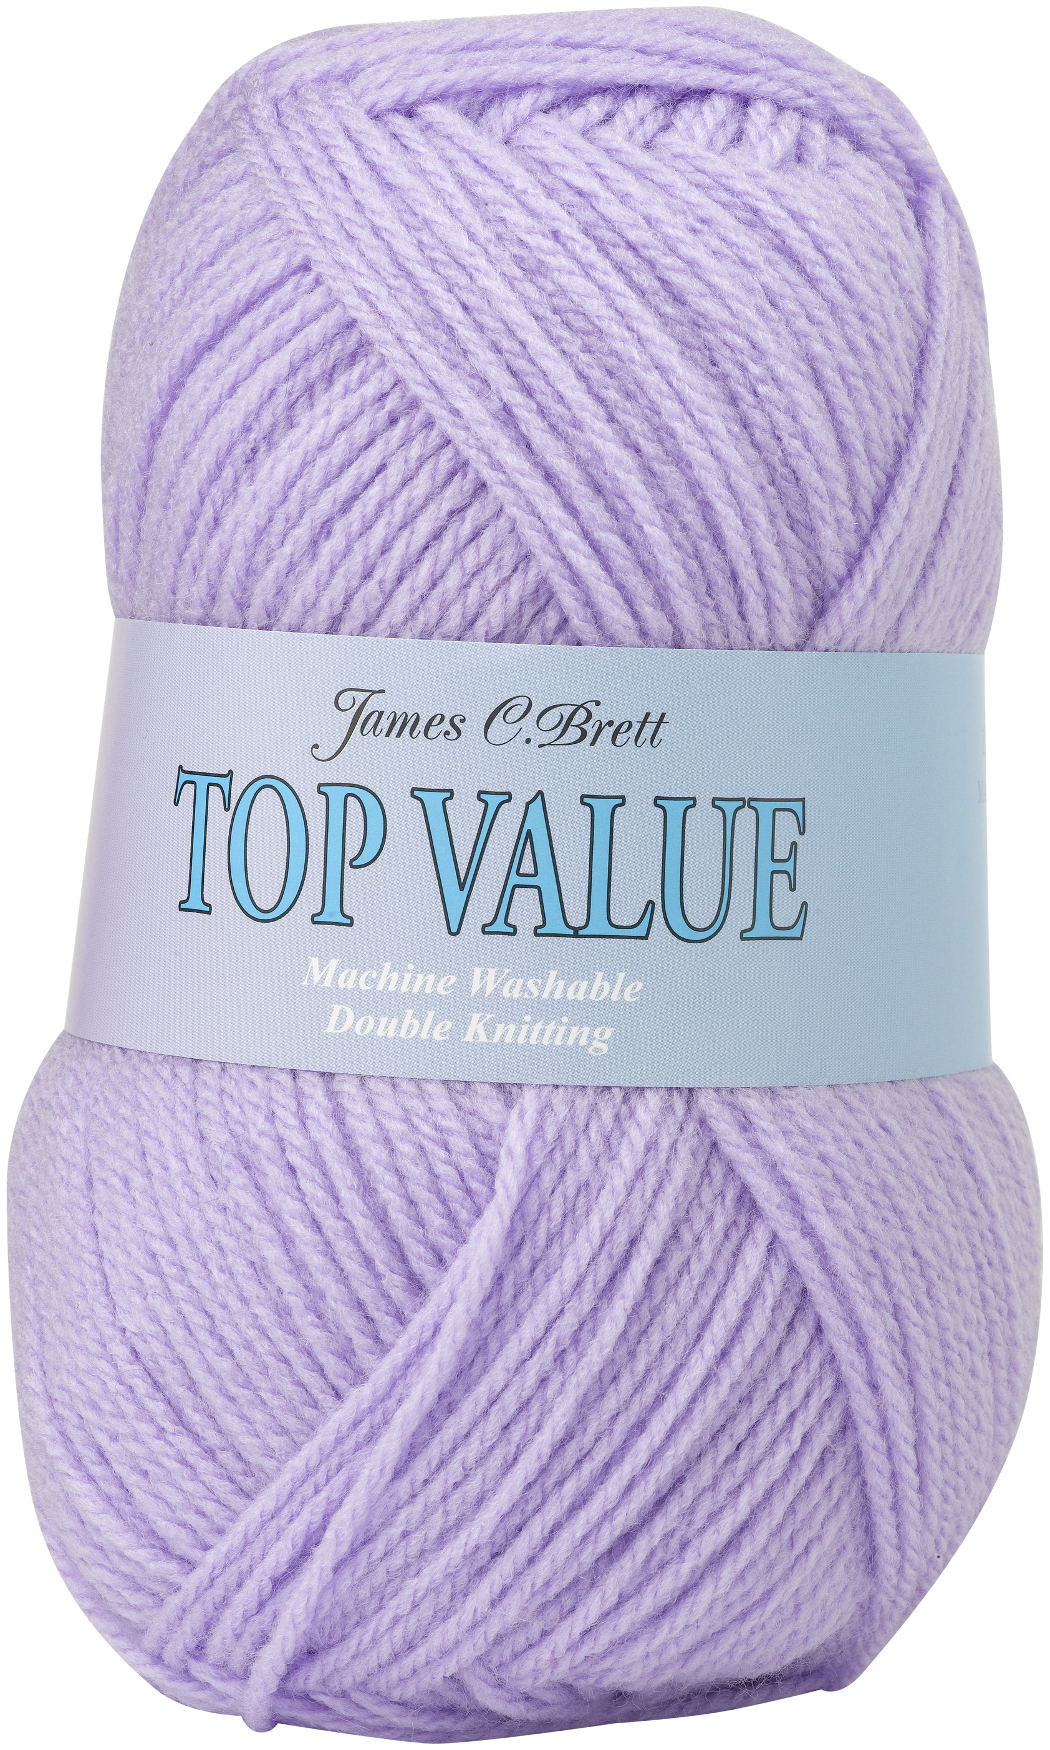 Acrylic Yarn : ... -Top-Value-DK-Machine-Washable-Yarn-100-Acrylic-Double-Knitting-Wool